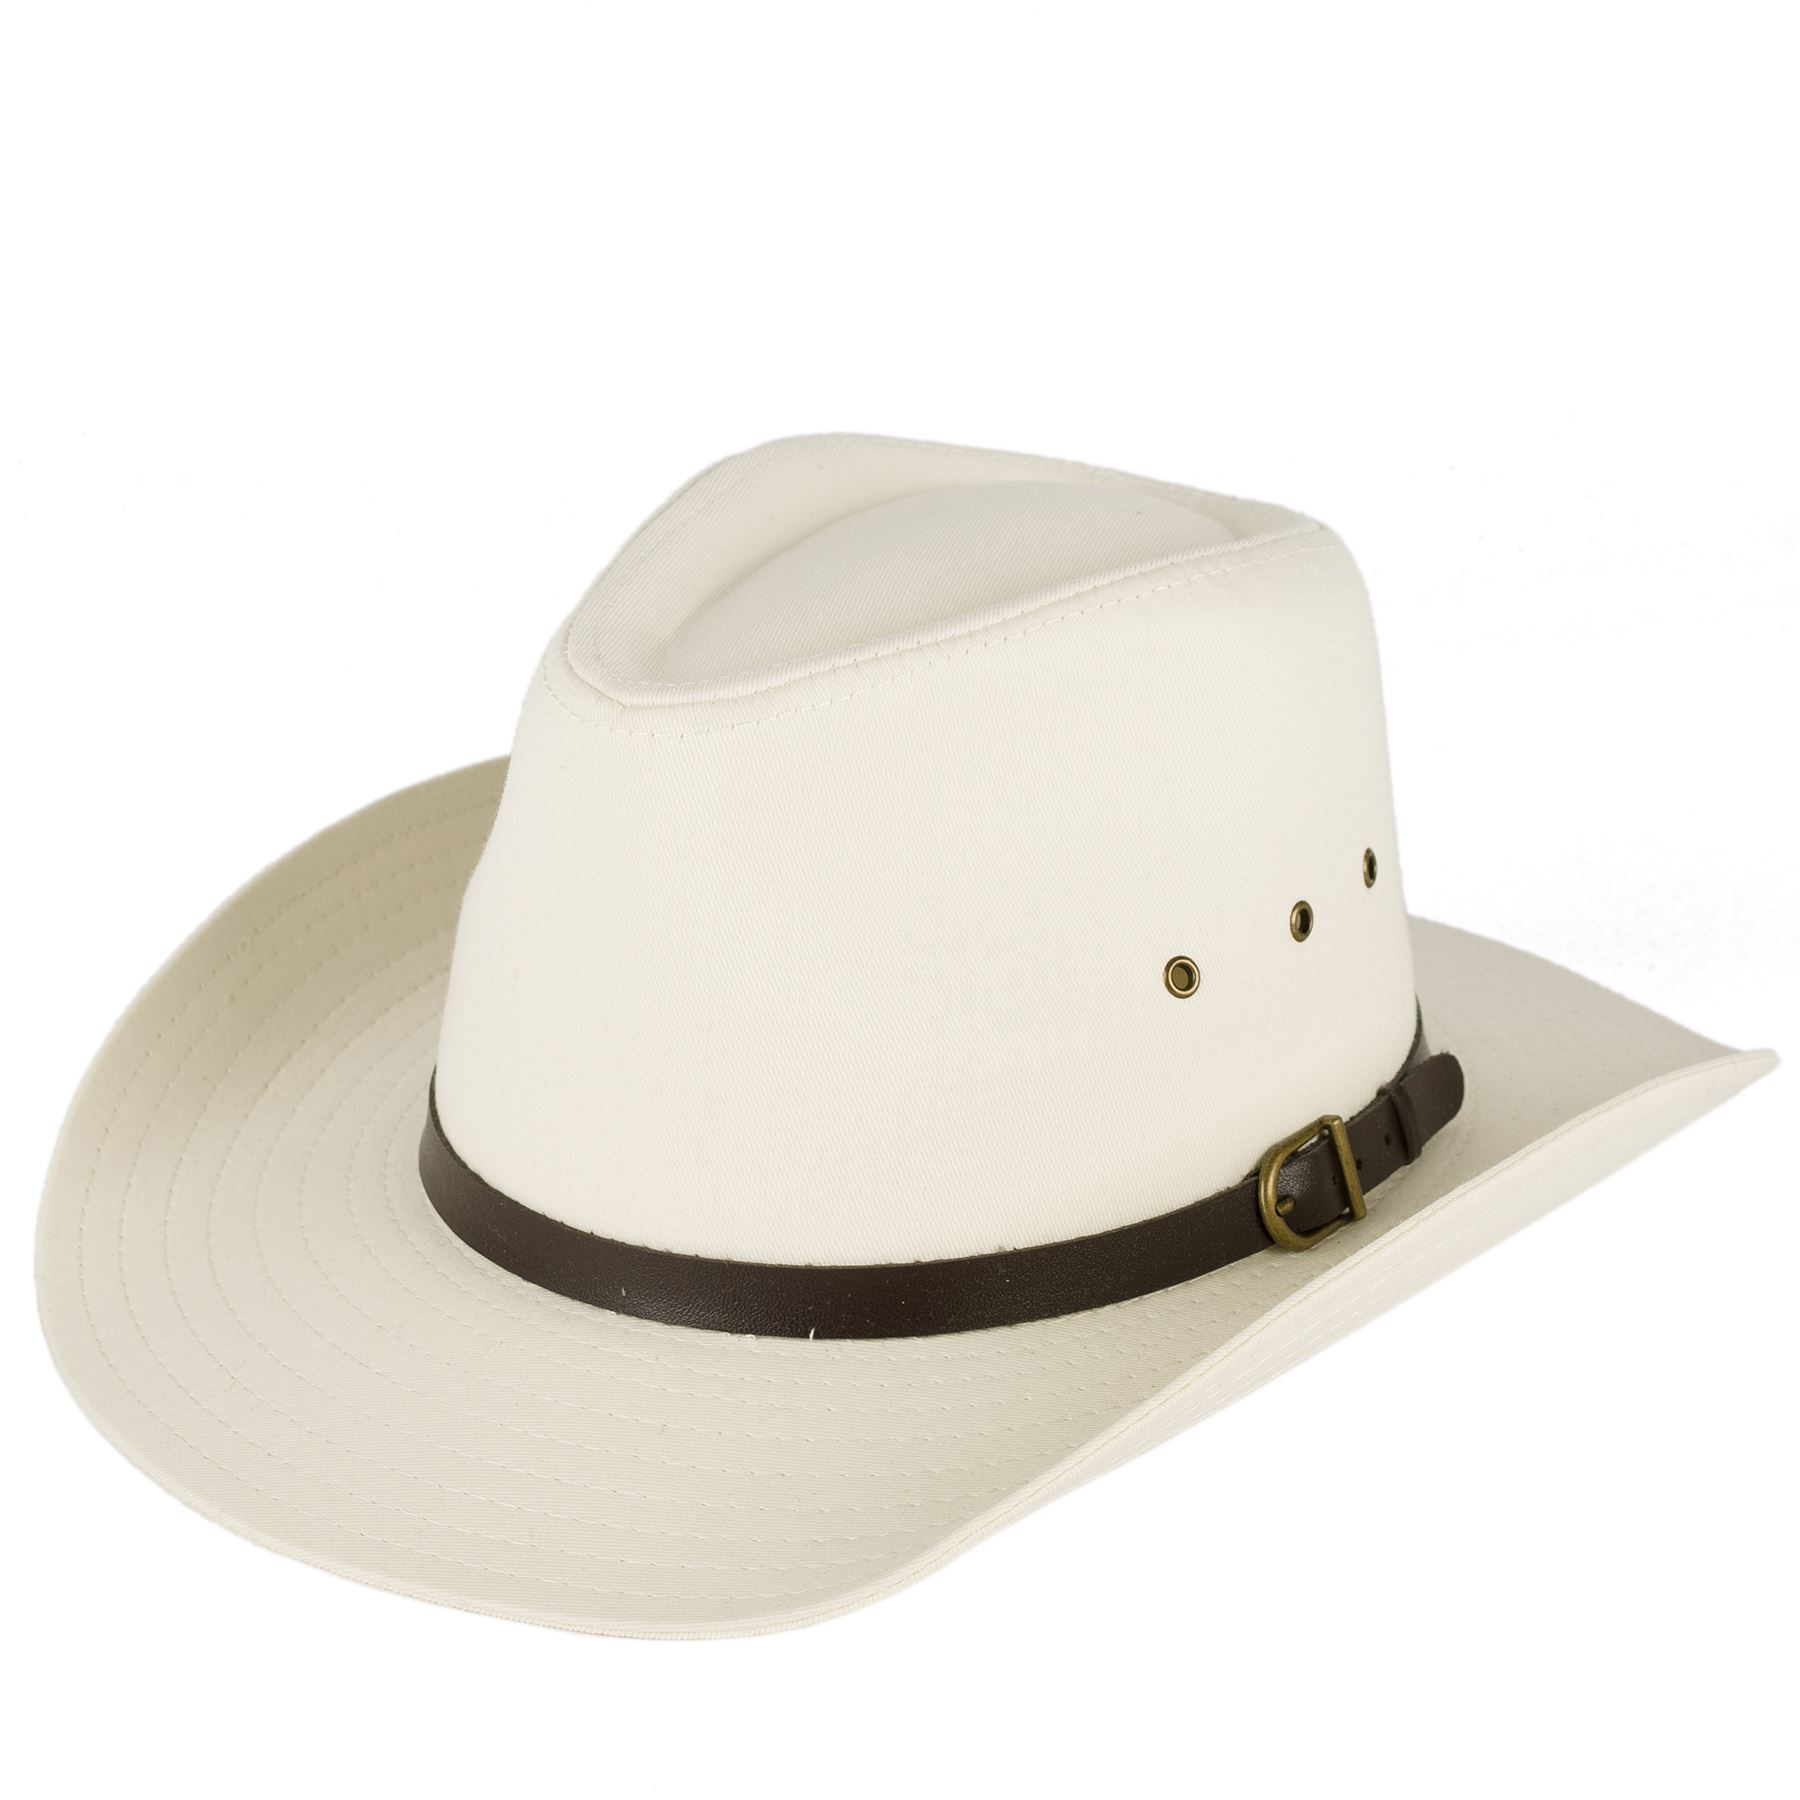 Buckle Hats: Men's Ladies Plain Stetson Style Cowboy Hat With Belt With